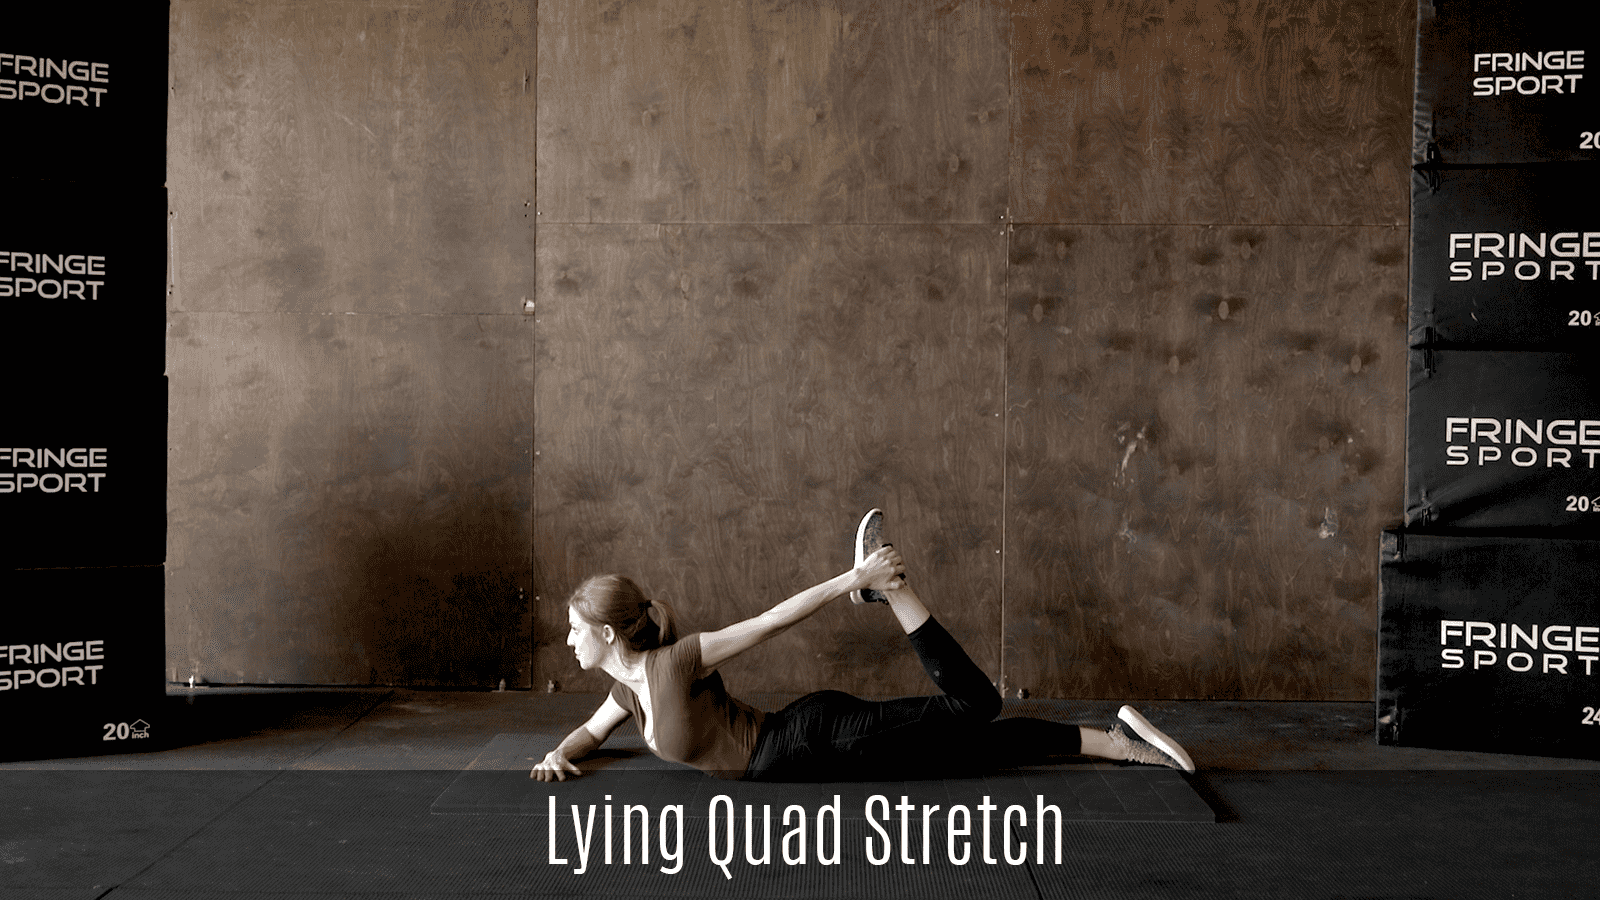 lying quad stretch demo